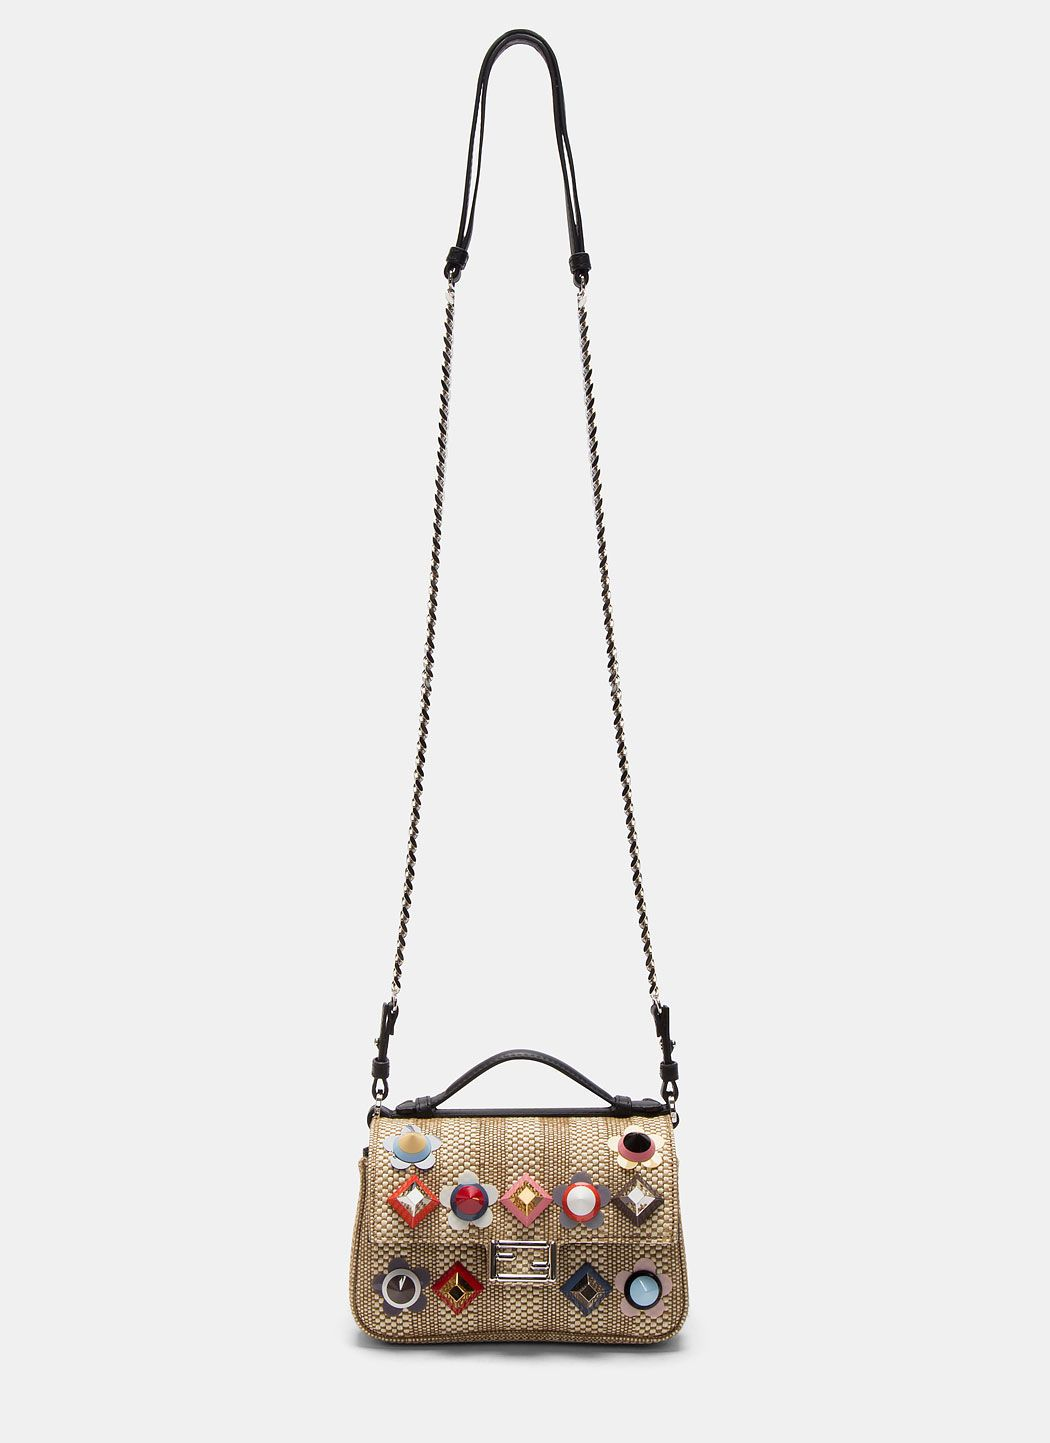 a161d17c5a3 FENDI Women s Micro Baguette Studded Double-Sided Straw Bag in Black and  Beige.  fendi  bags  shoulder bags  hand bags  leather